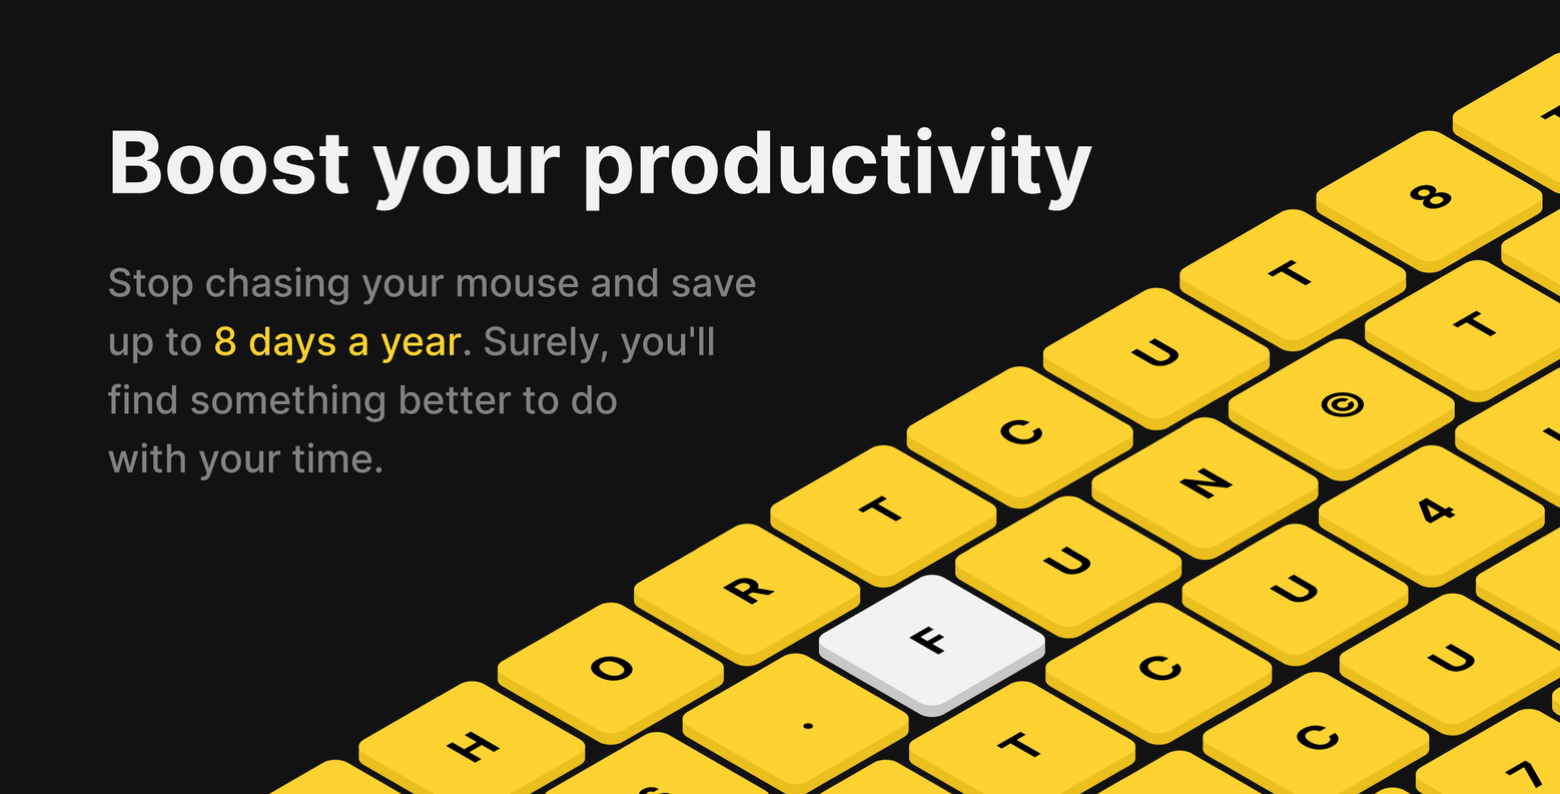 Mouseless keyboard shortcuts